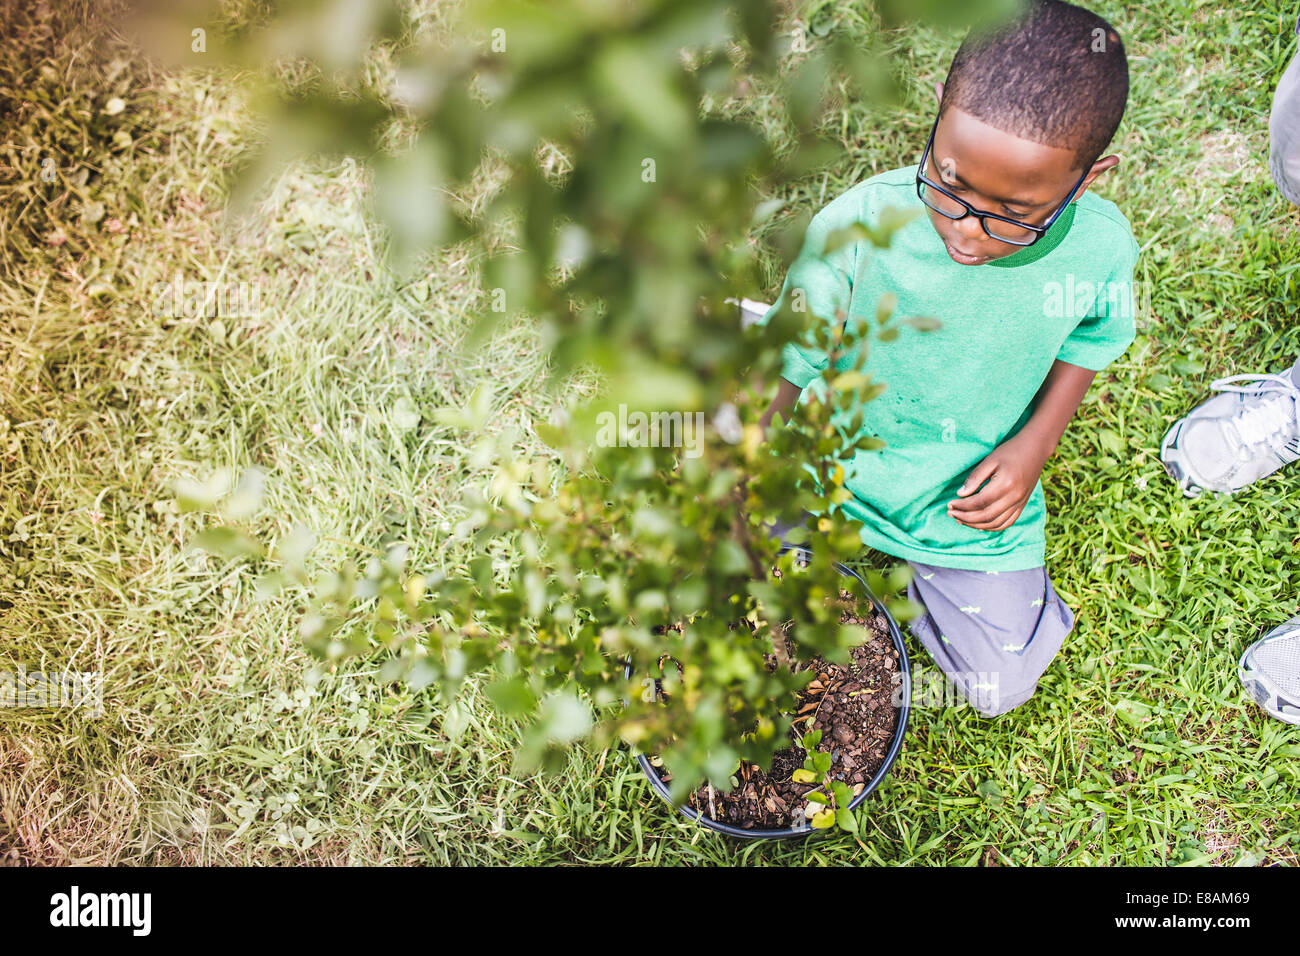 Boy kneeling and tending plant in parkland eco camp - Stock Image